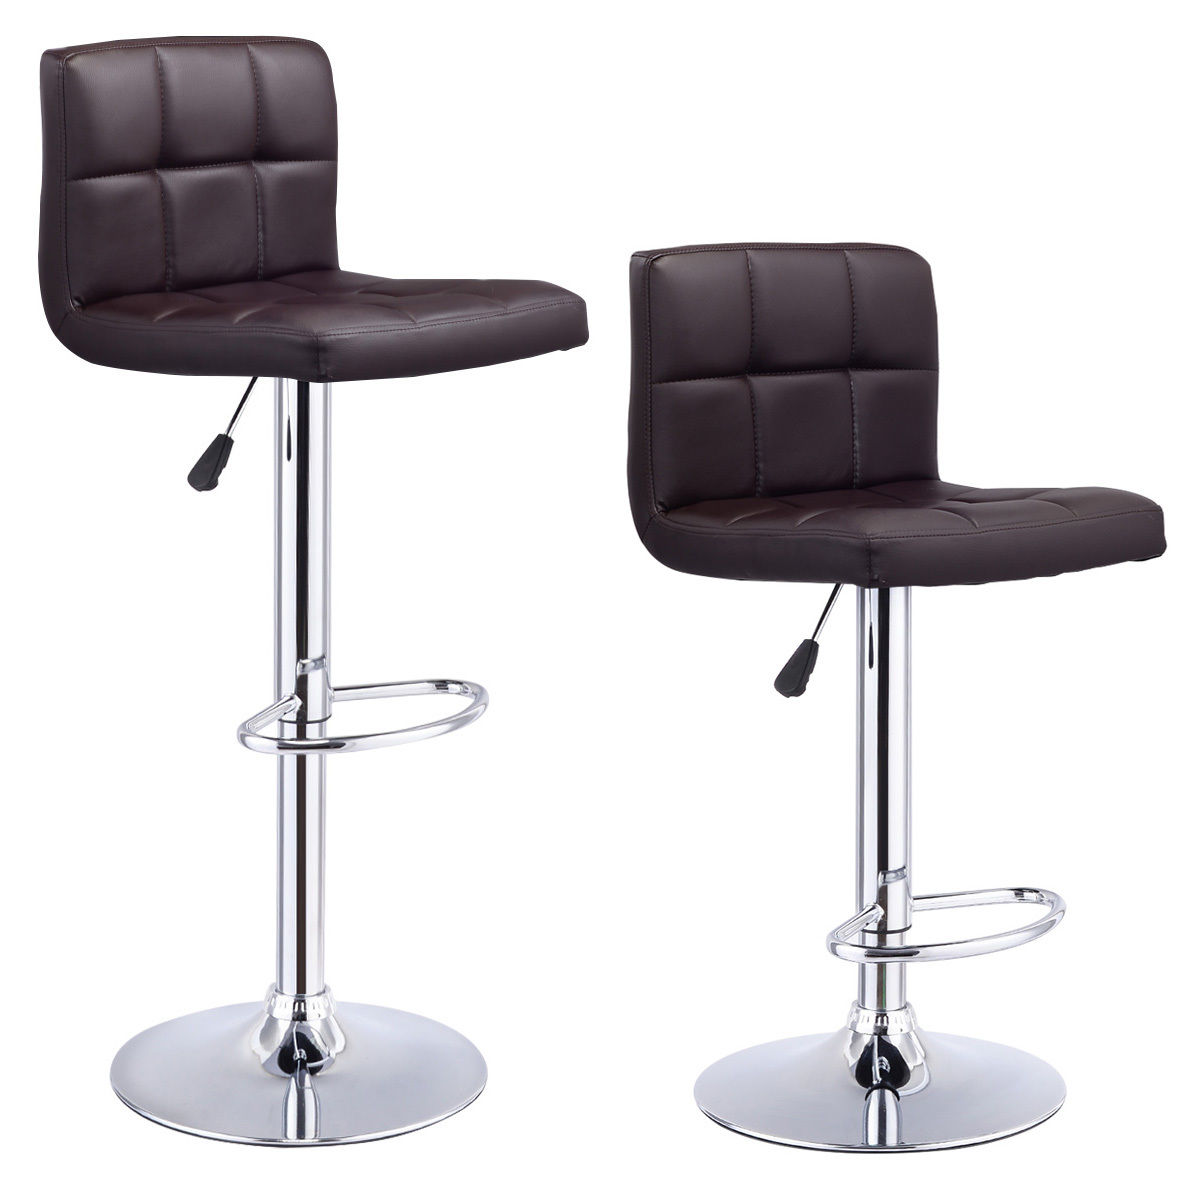 Costway Set Of 2 Bar Stools PU Leather Adjustable Barstool Swivel Pub Chairs Brown  sc 1 st  Walmart & Bar Stools - Walmart.com islam-shia.org